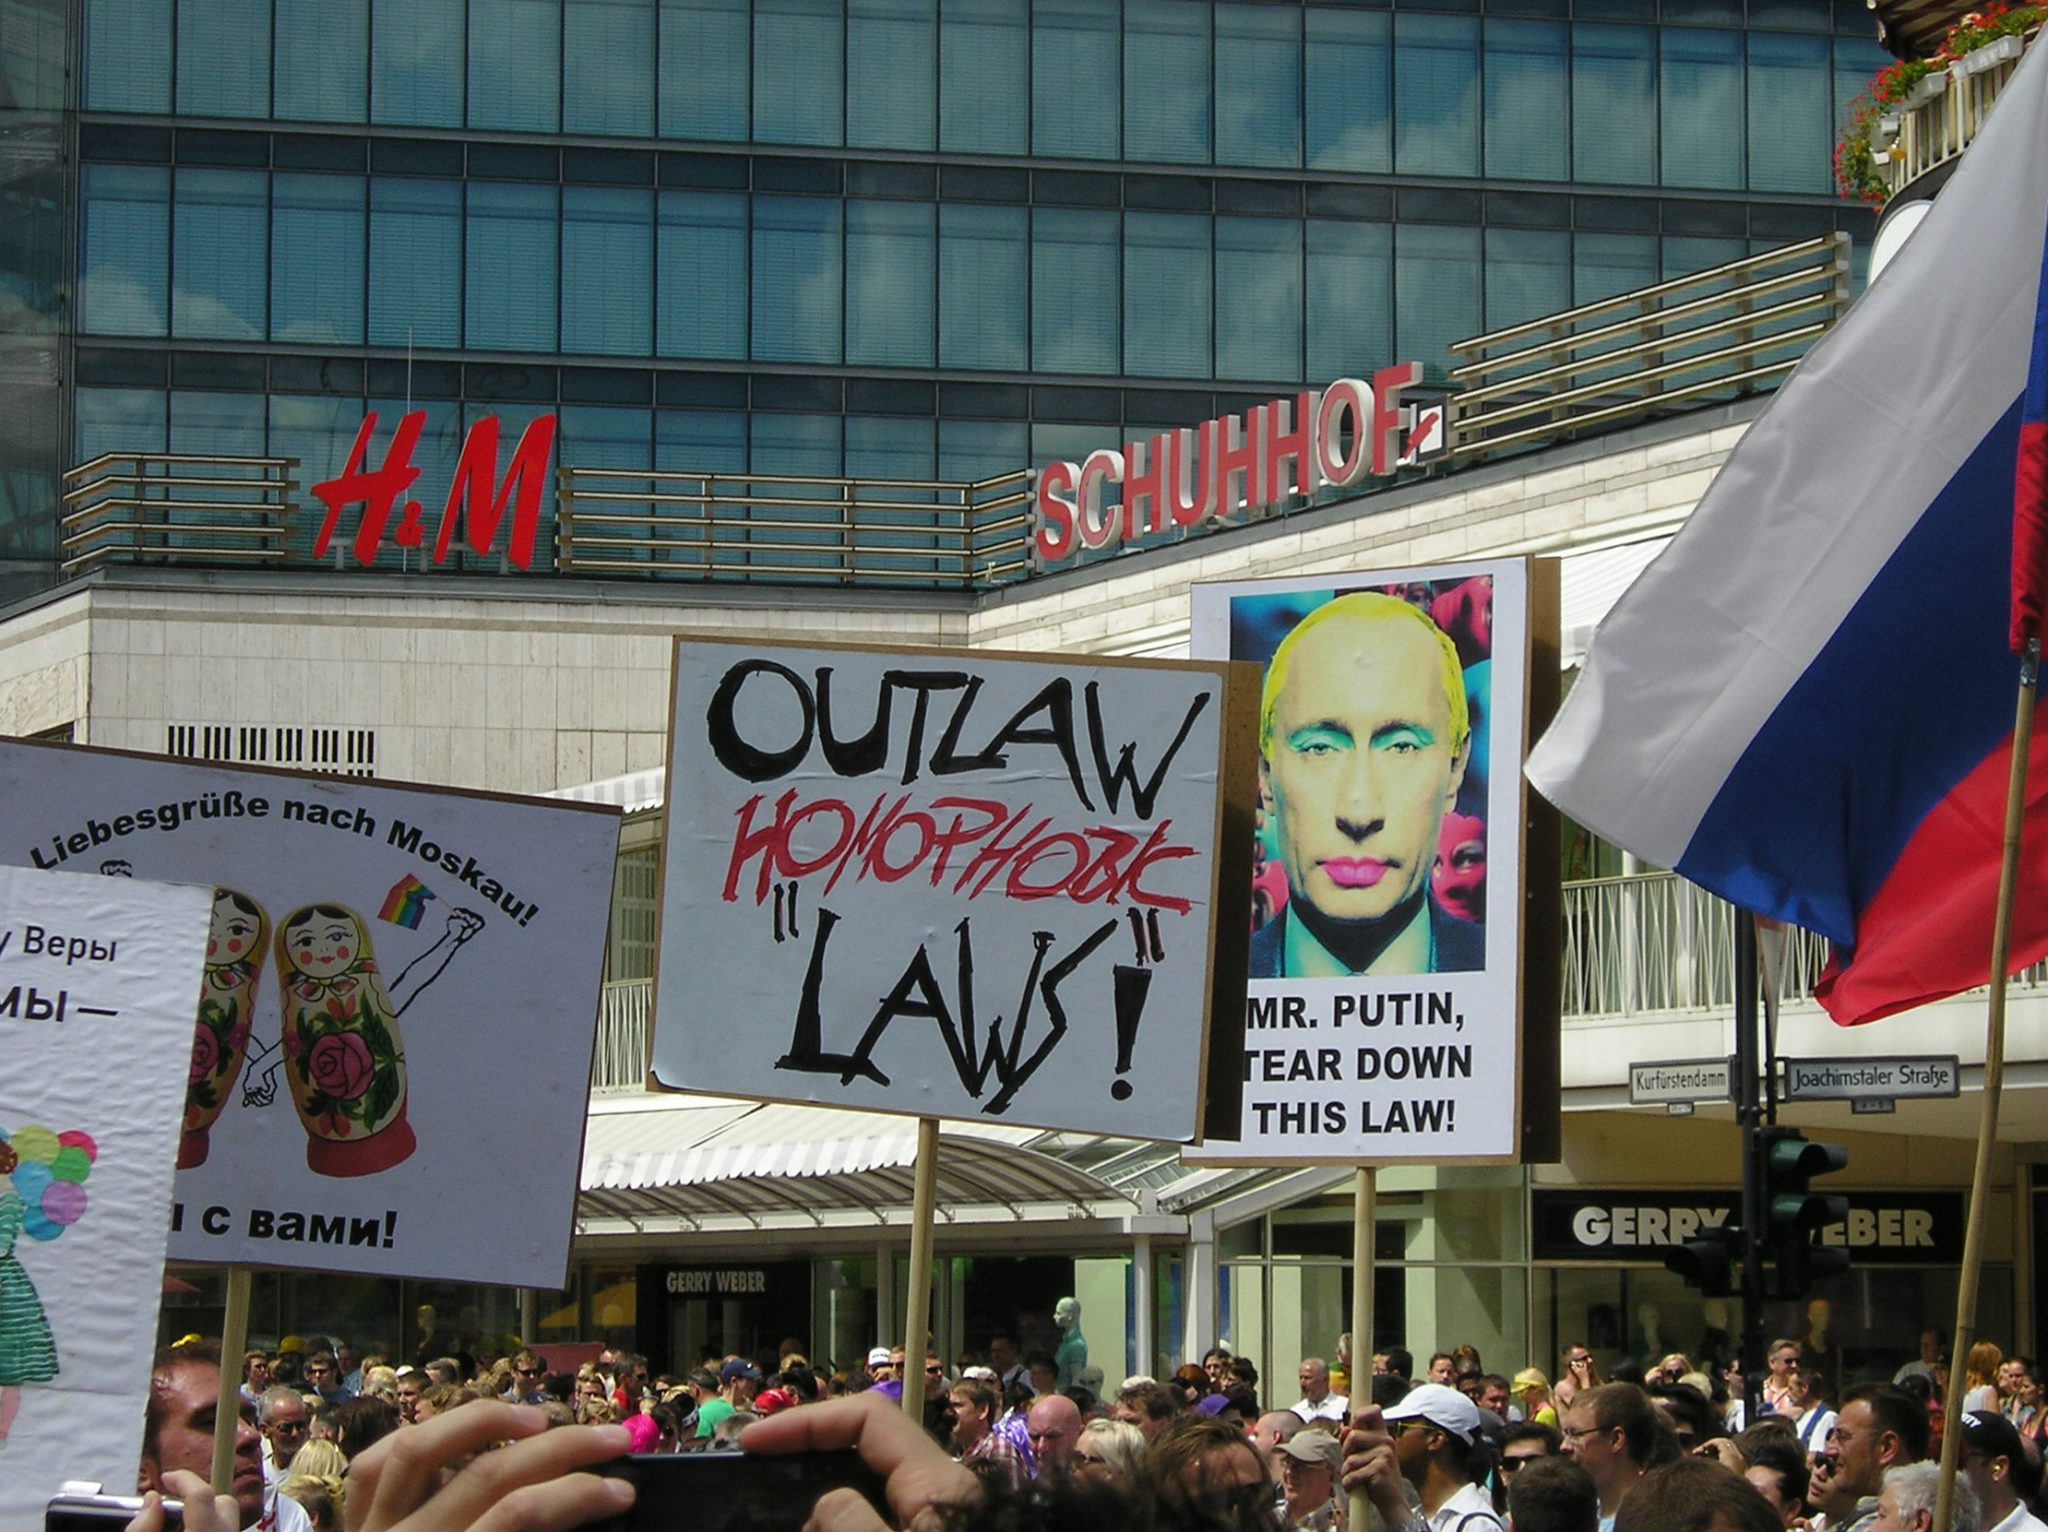 Outlaw homophobic laws!